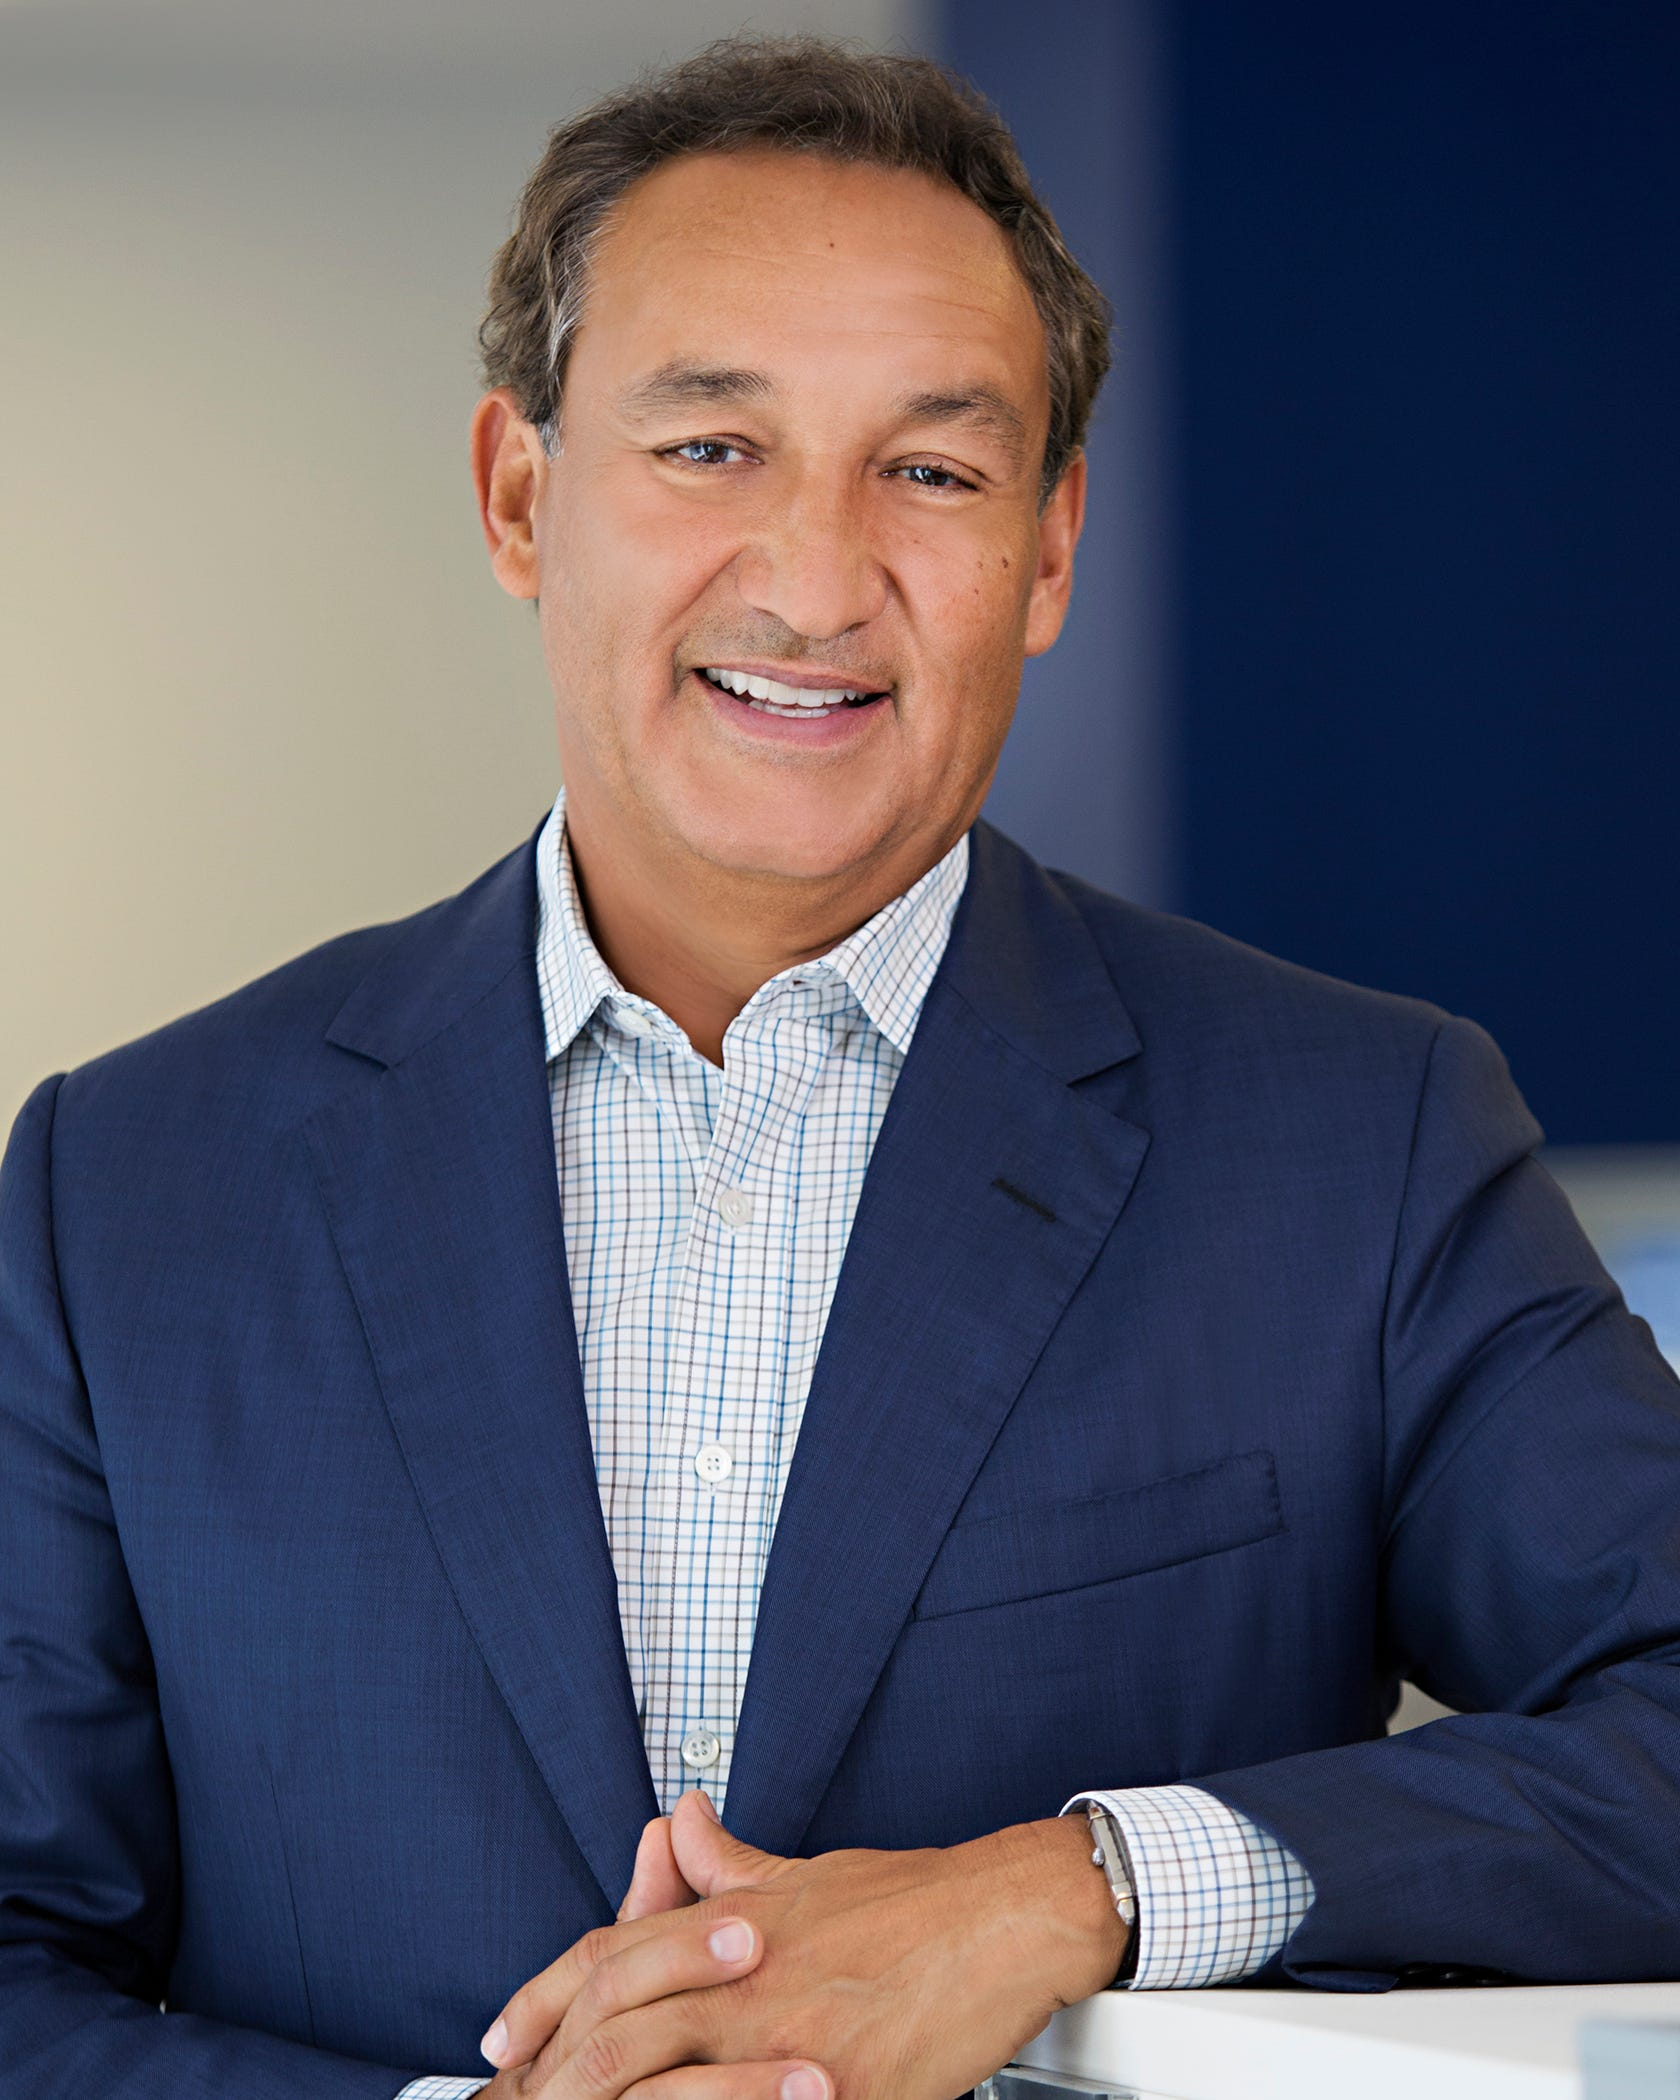 United CEO Munoz won't become board chairman as planned